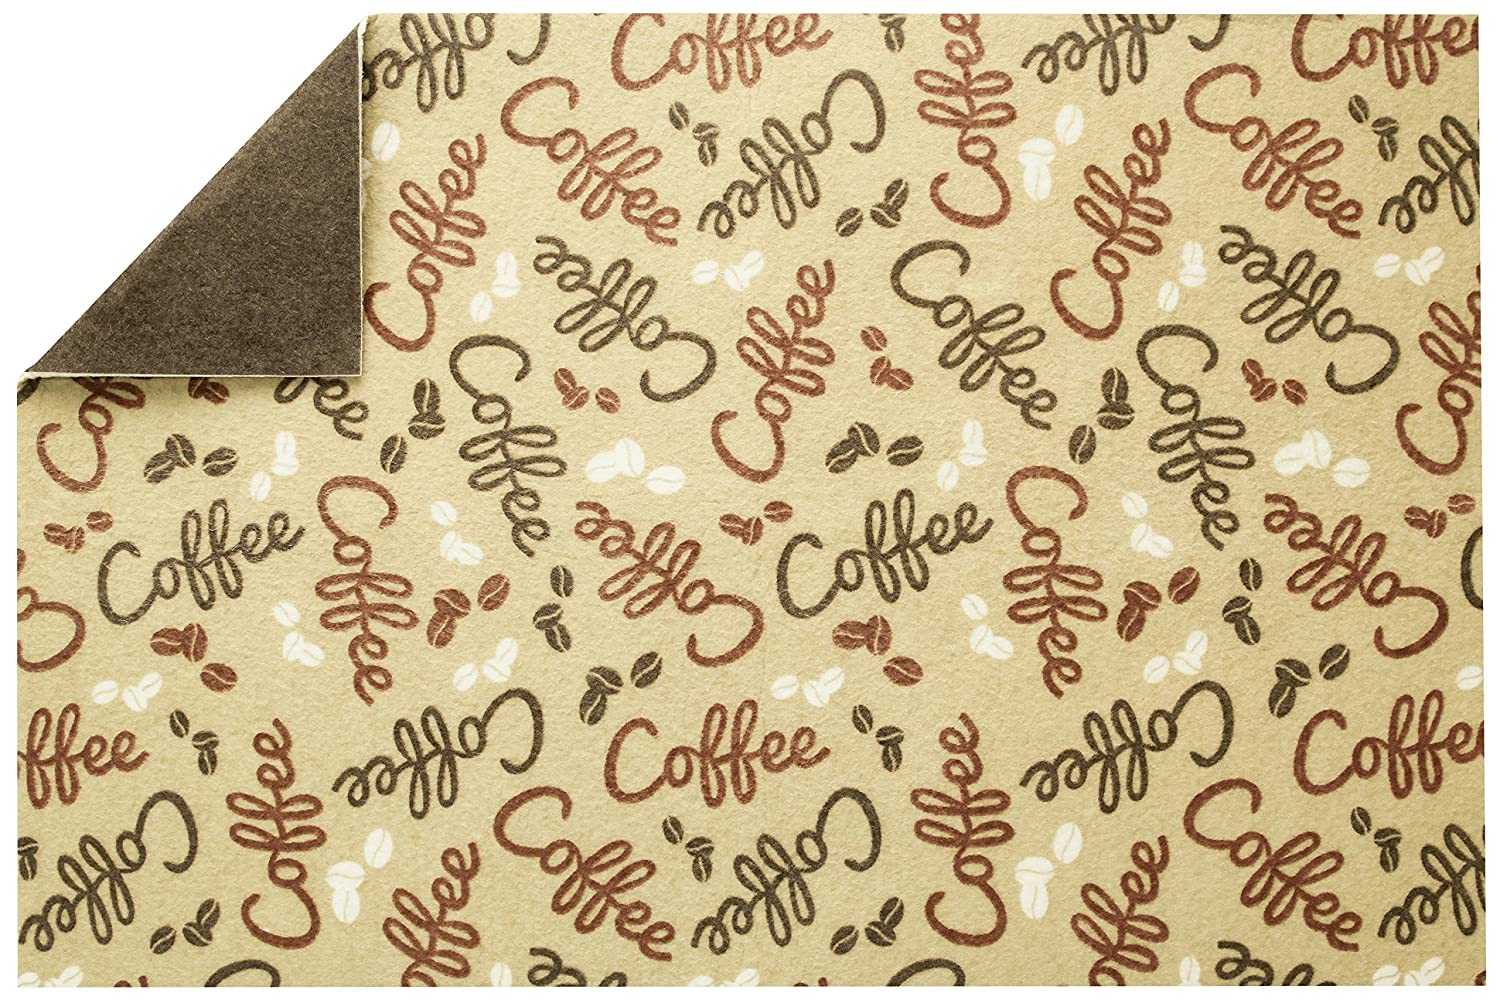 S&T 591601 Coffee & Java Maker Mat, 12 x 18, Bean Print 12 x 18 Schroeder & Tremayne Inc.